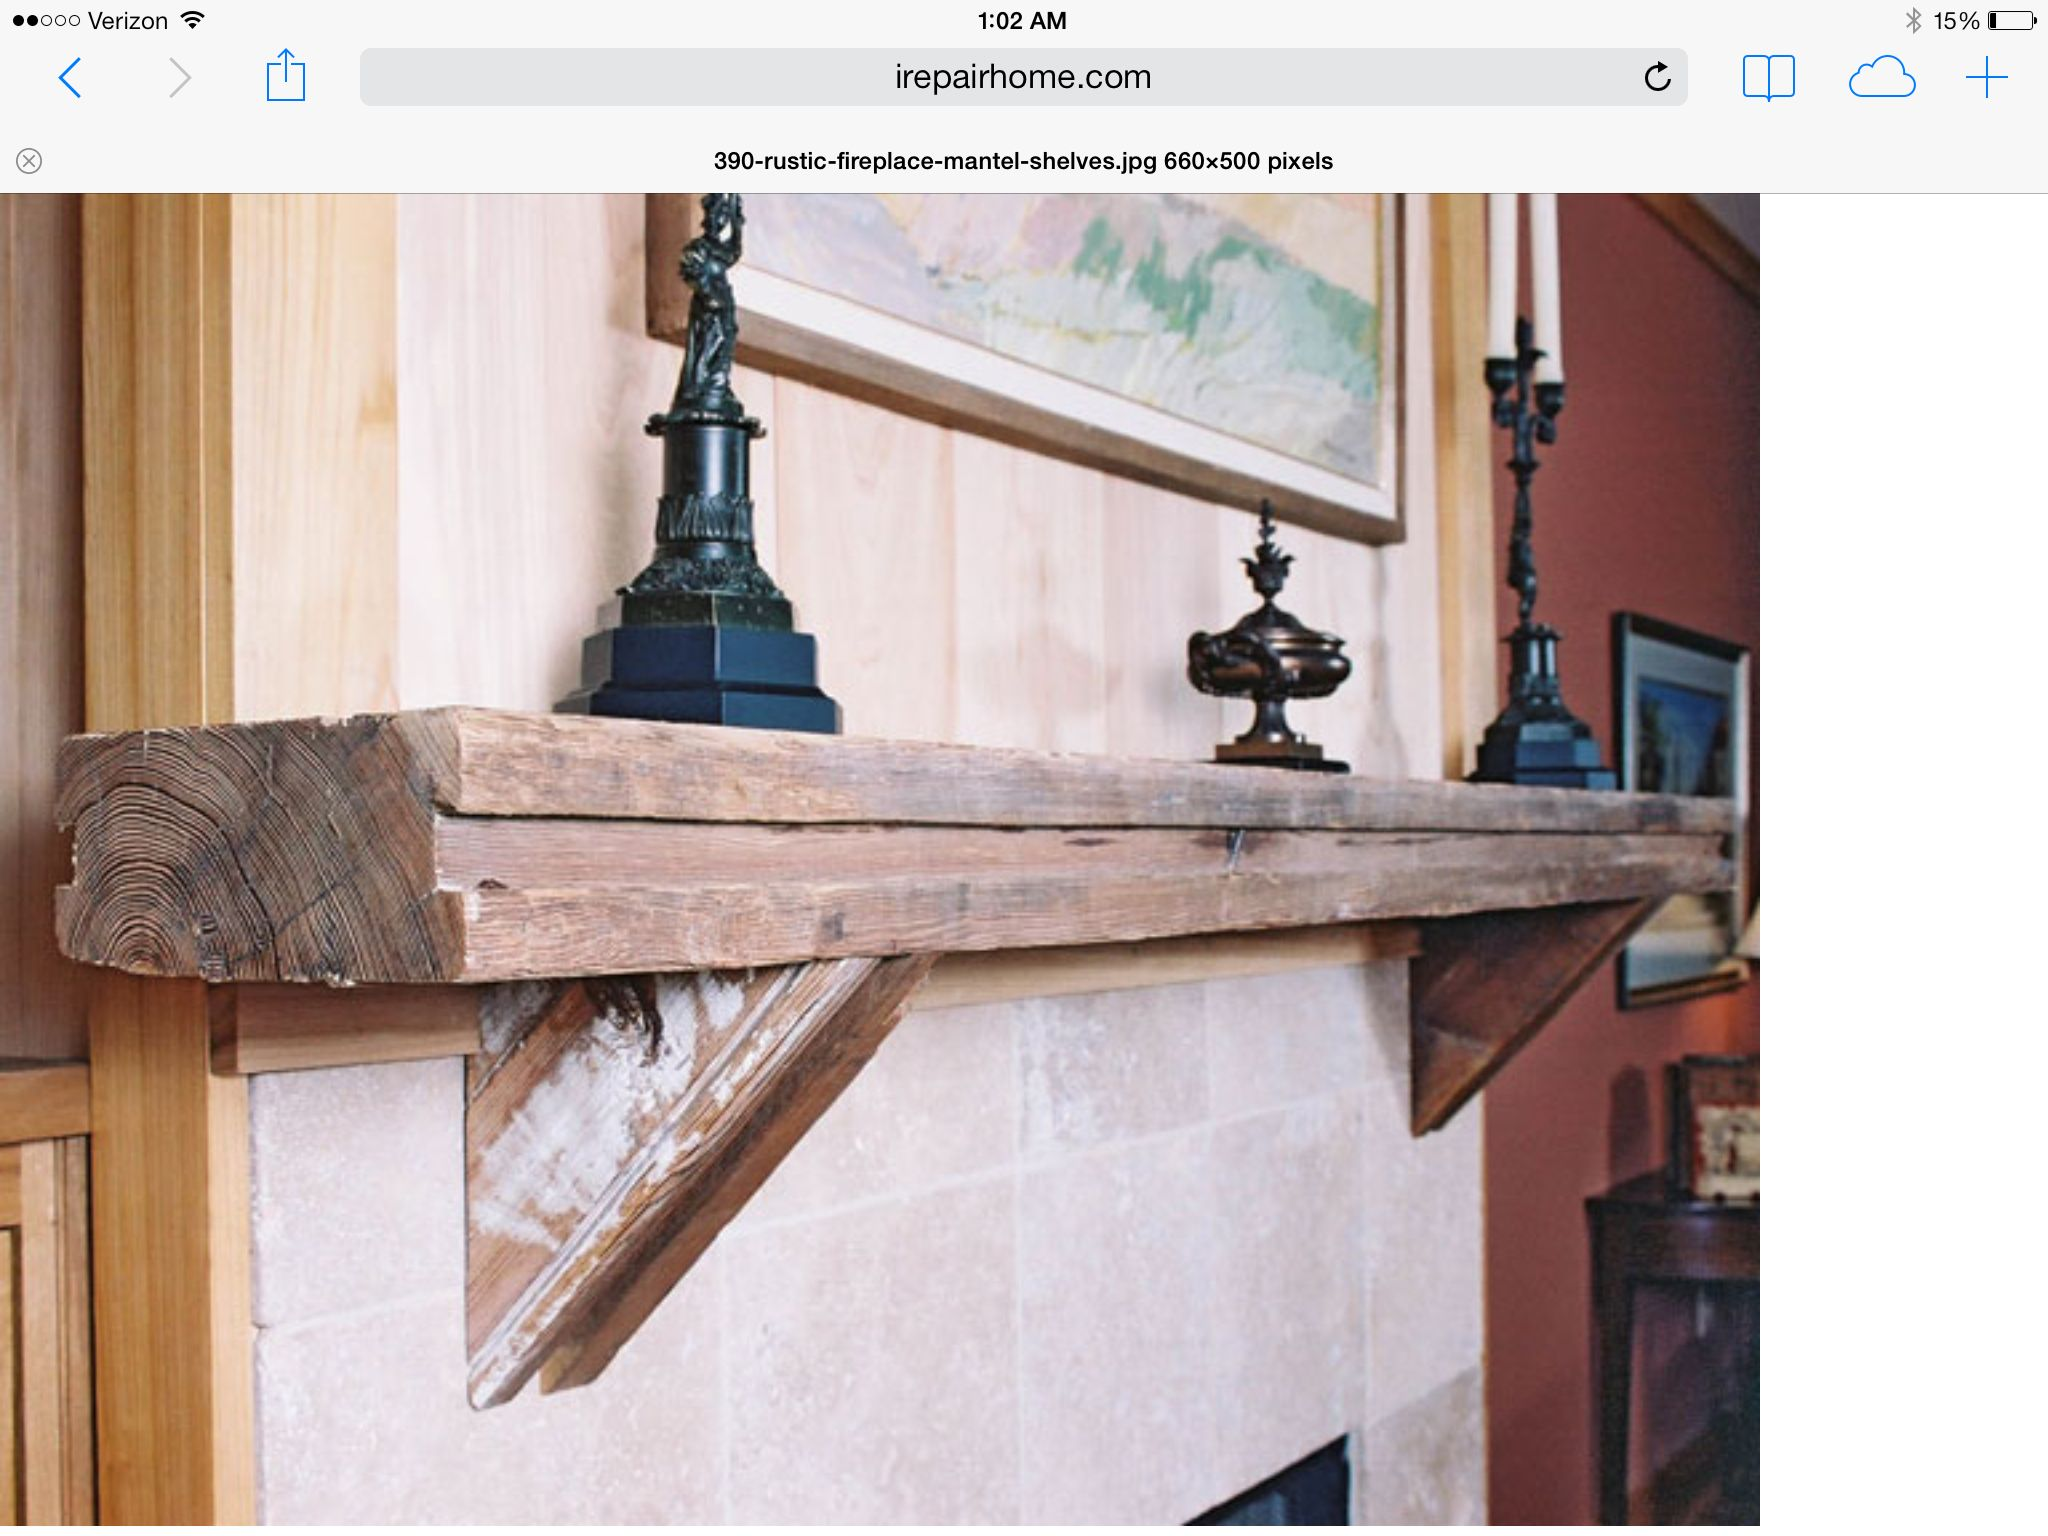 Driftwood mantle | The pergola project | Pinterest | Mantles